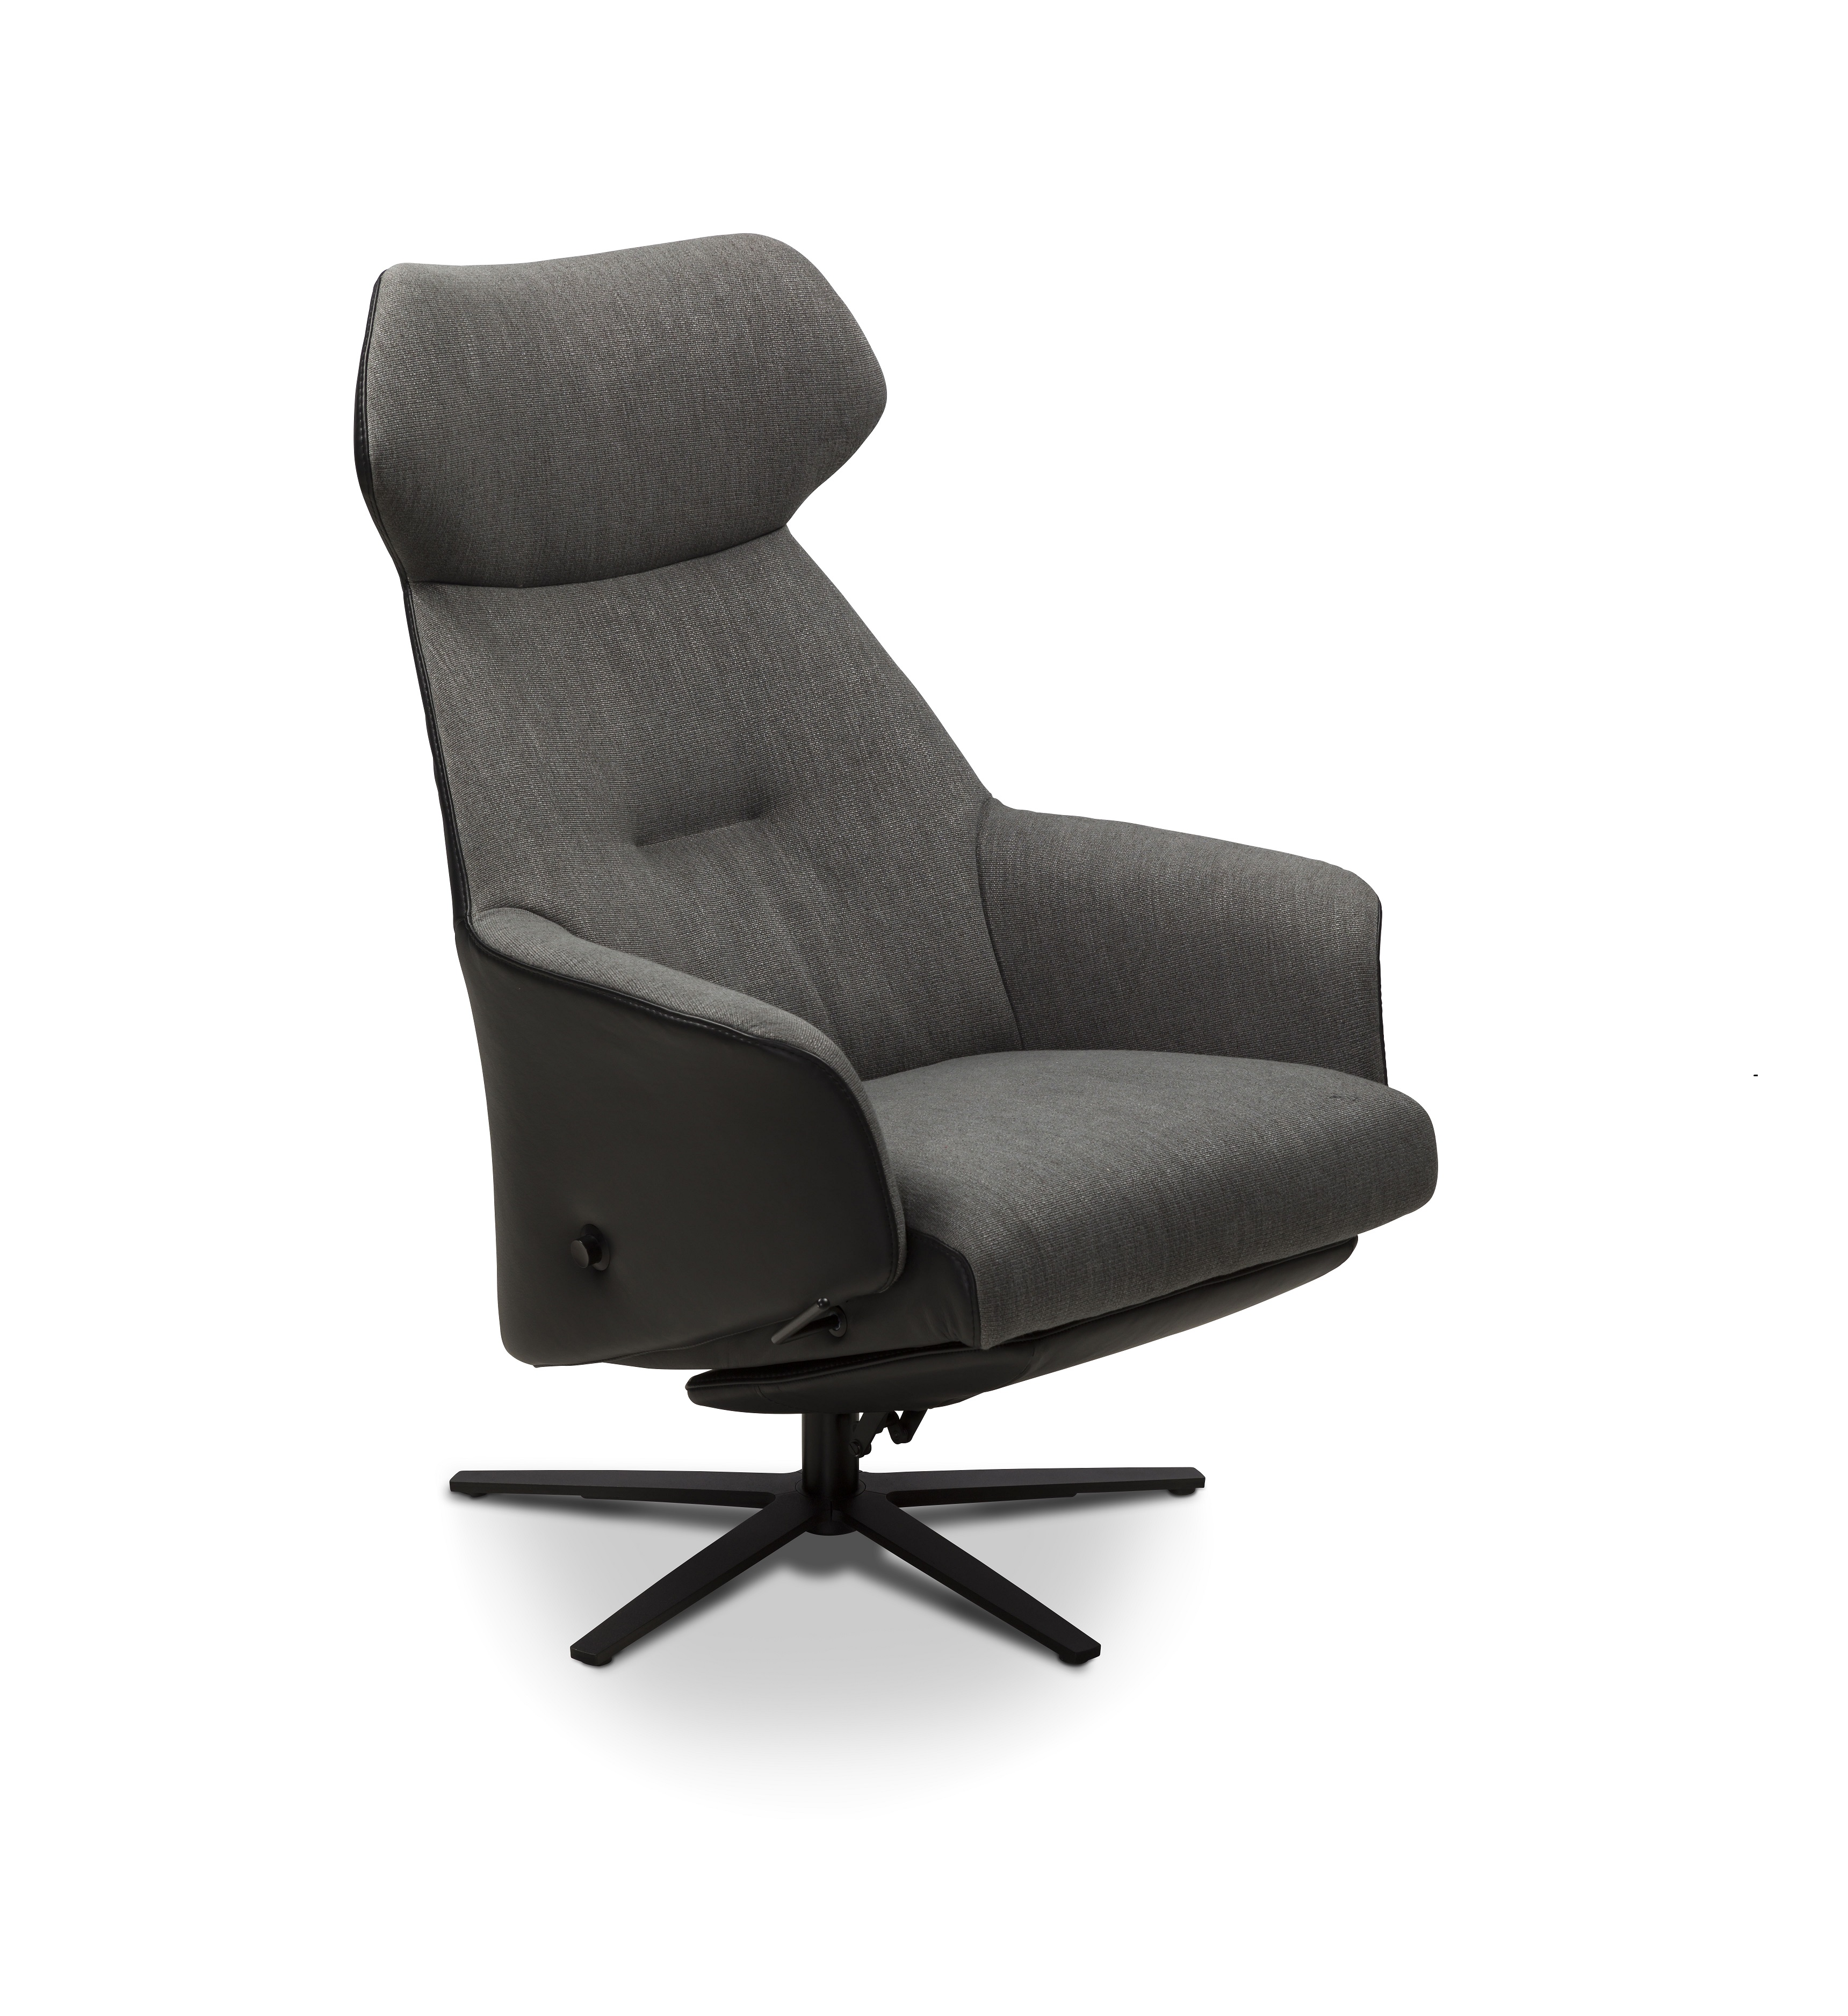 Thrones-Arc-Relax-fauteuil-2006-2